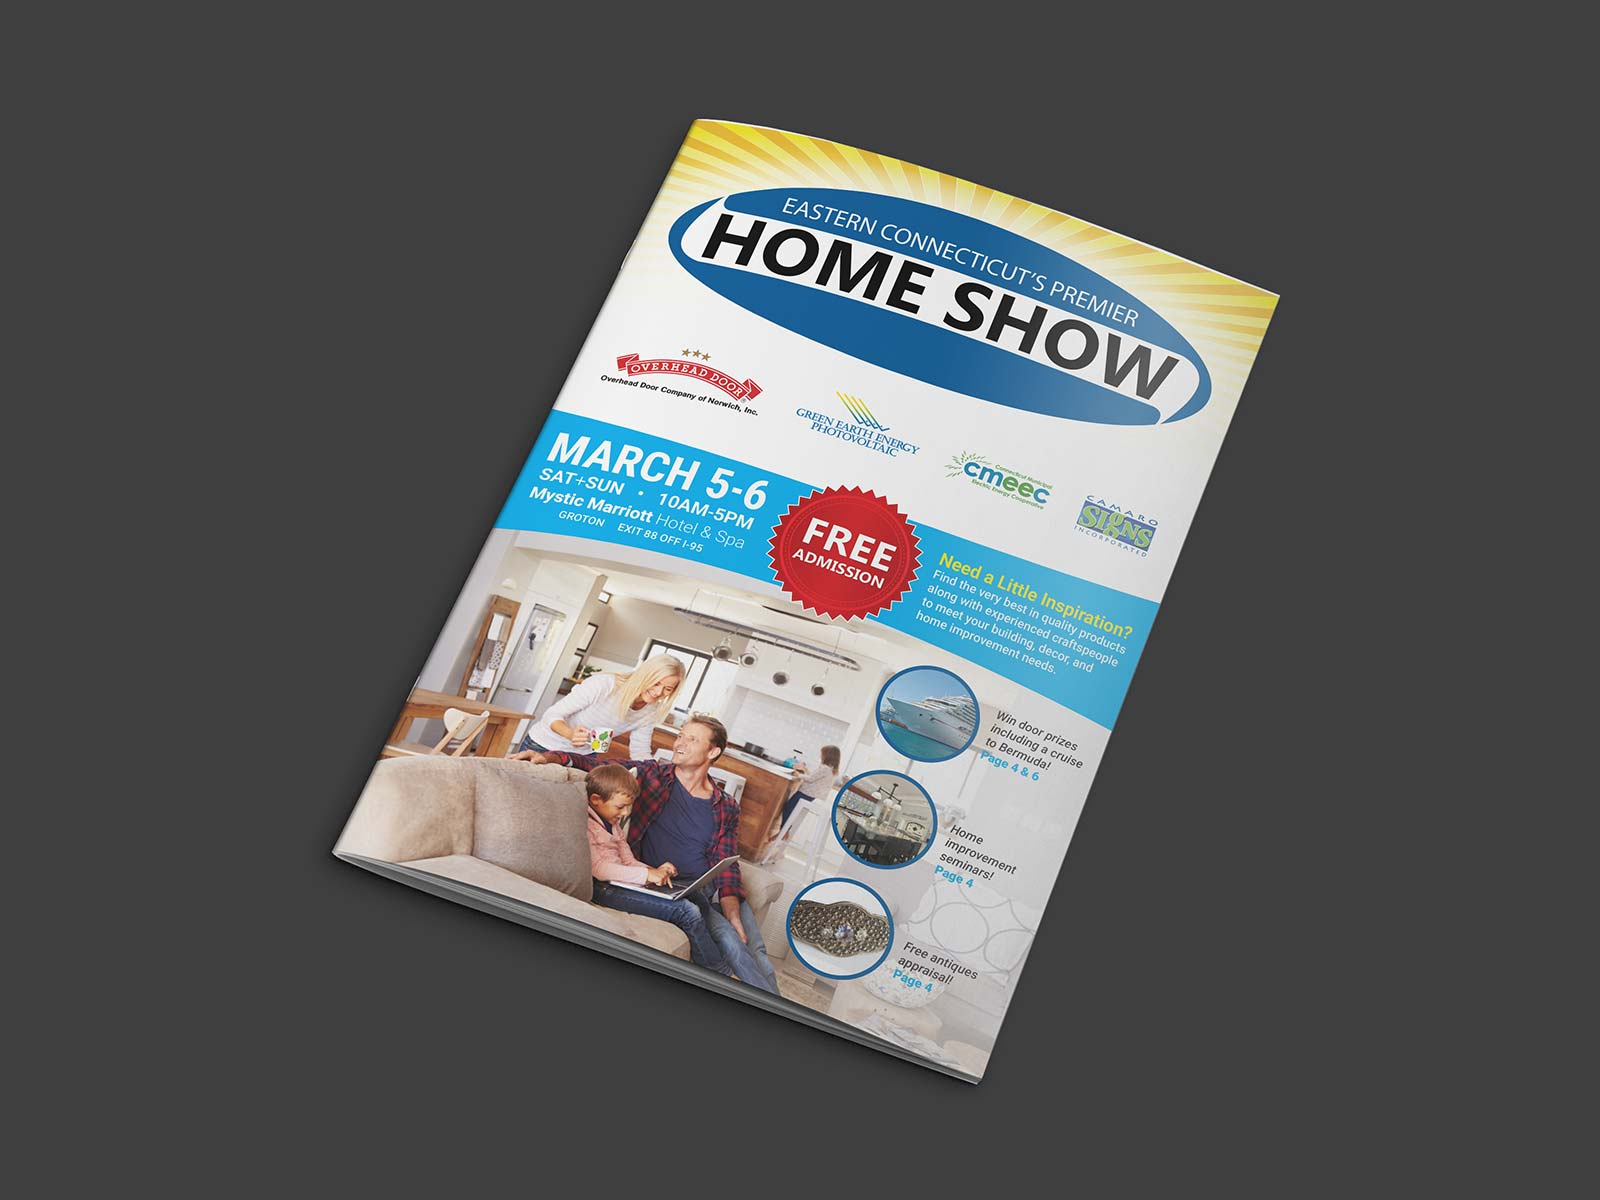 Home Show program booklet cover